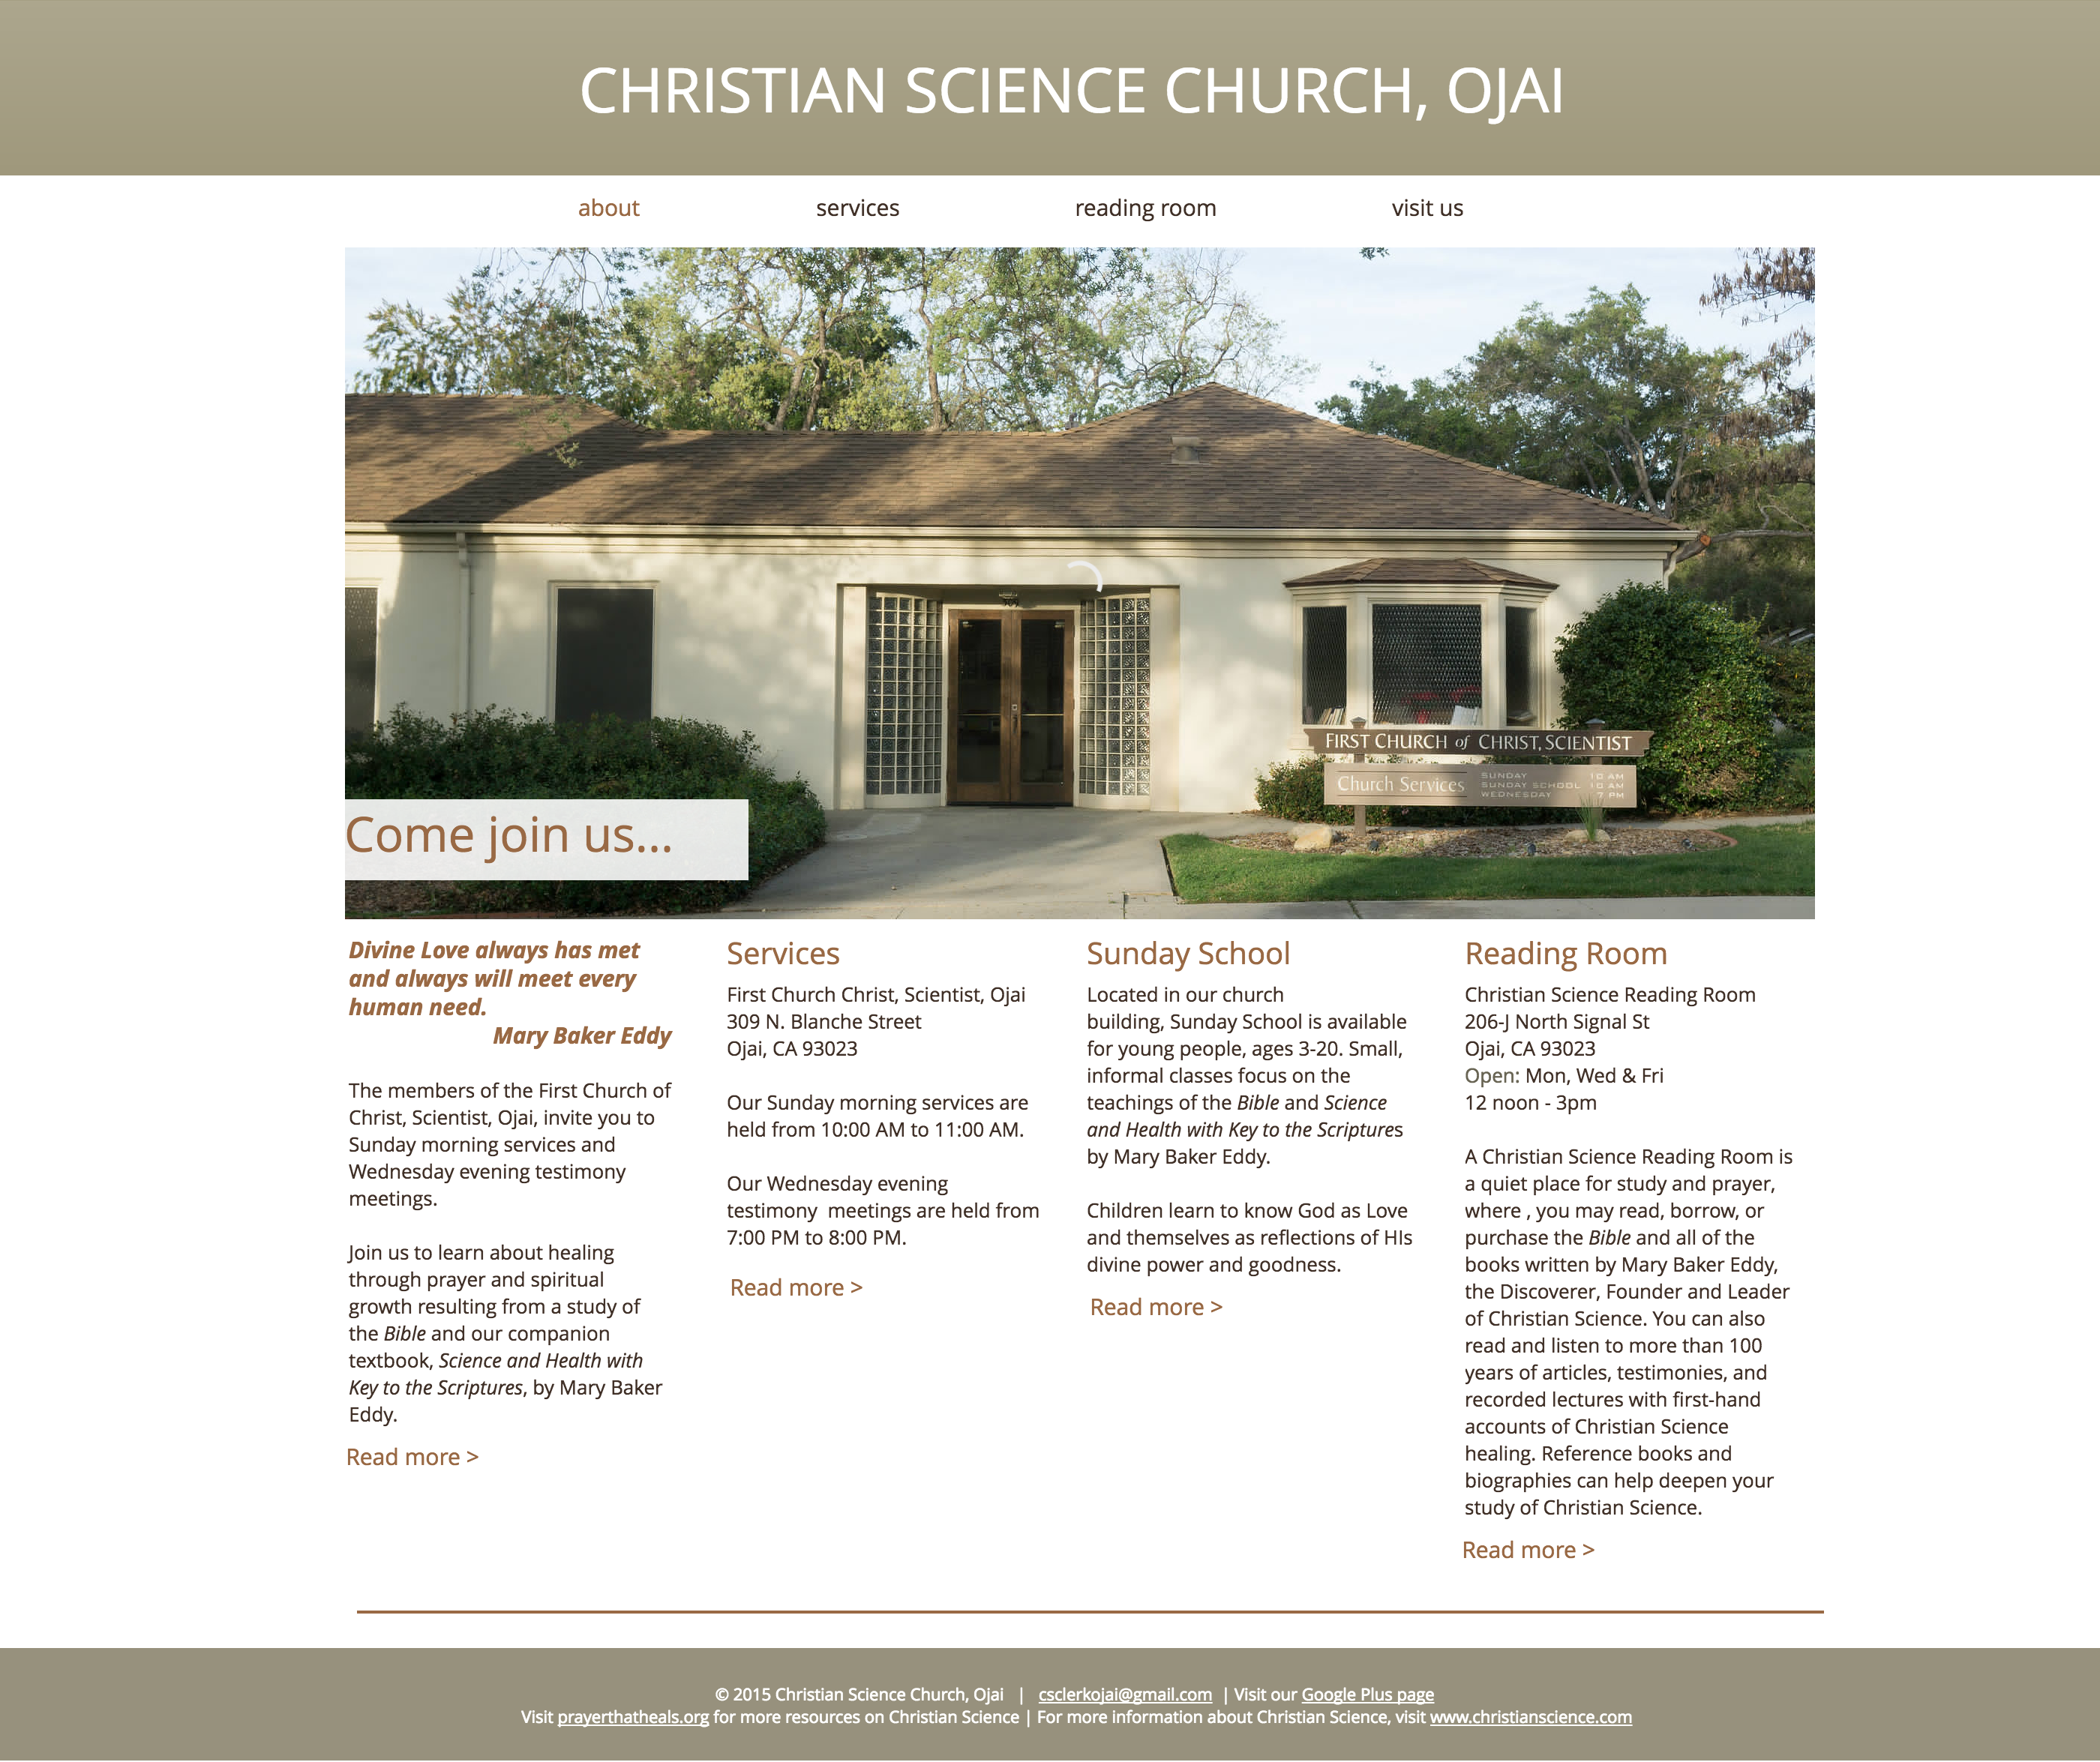 Christian Science Church, Ojai